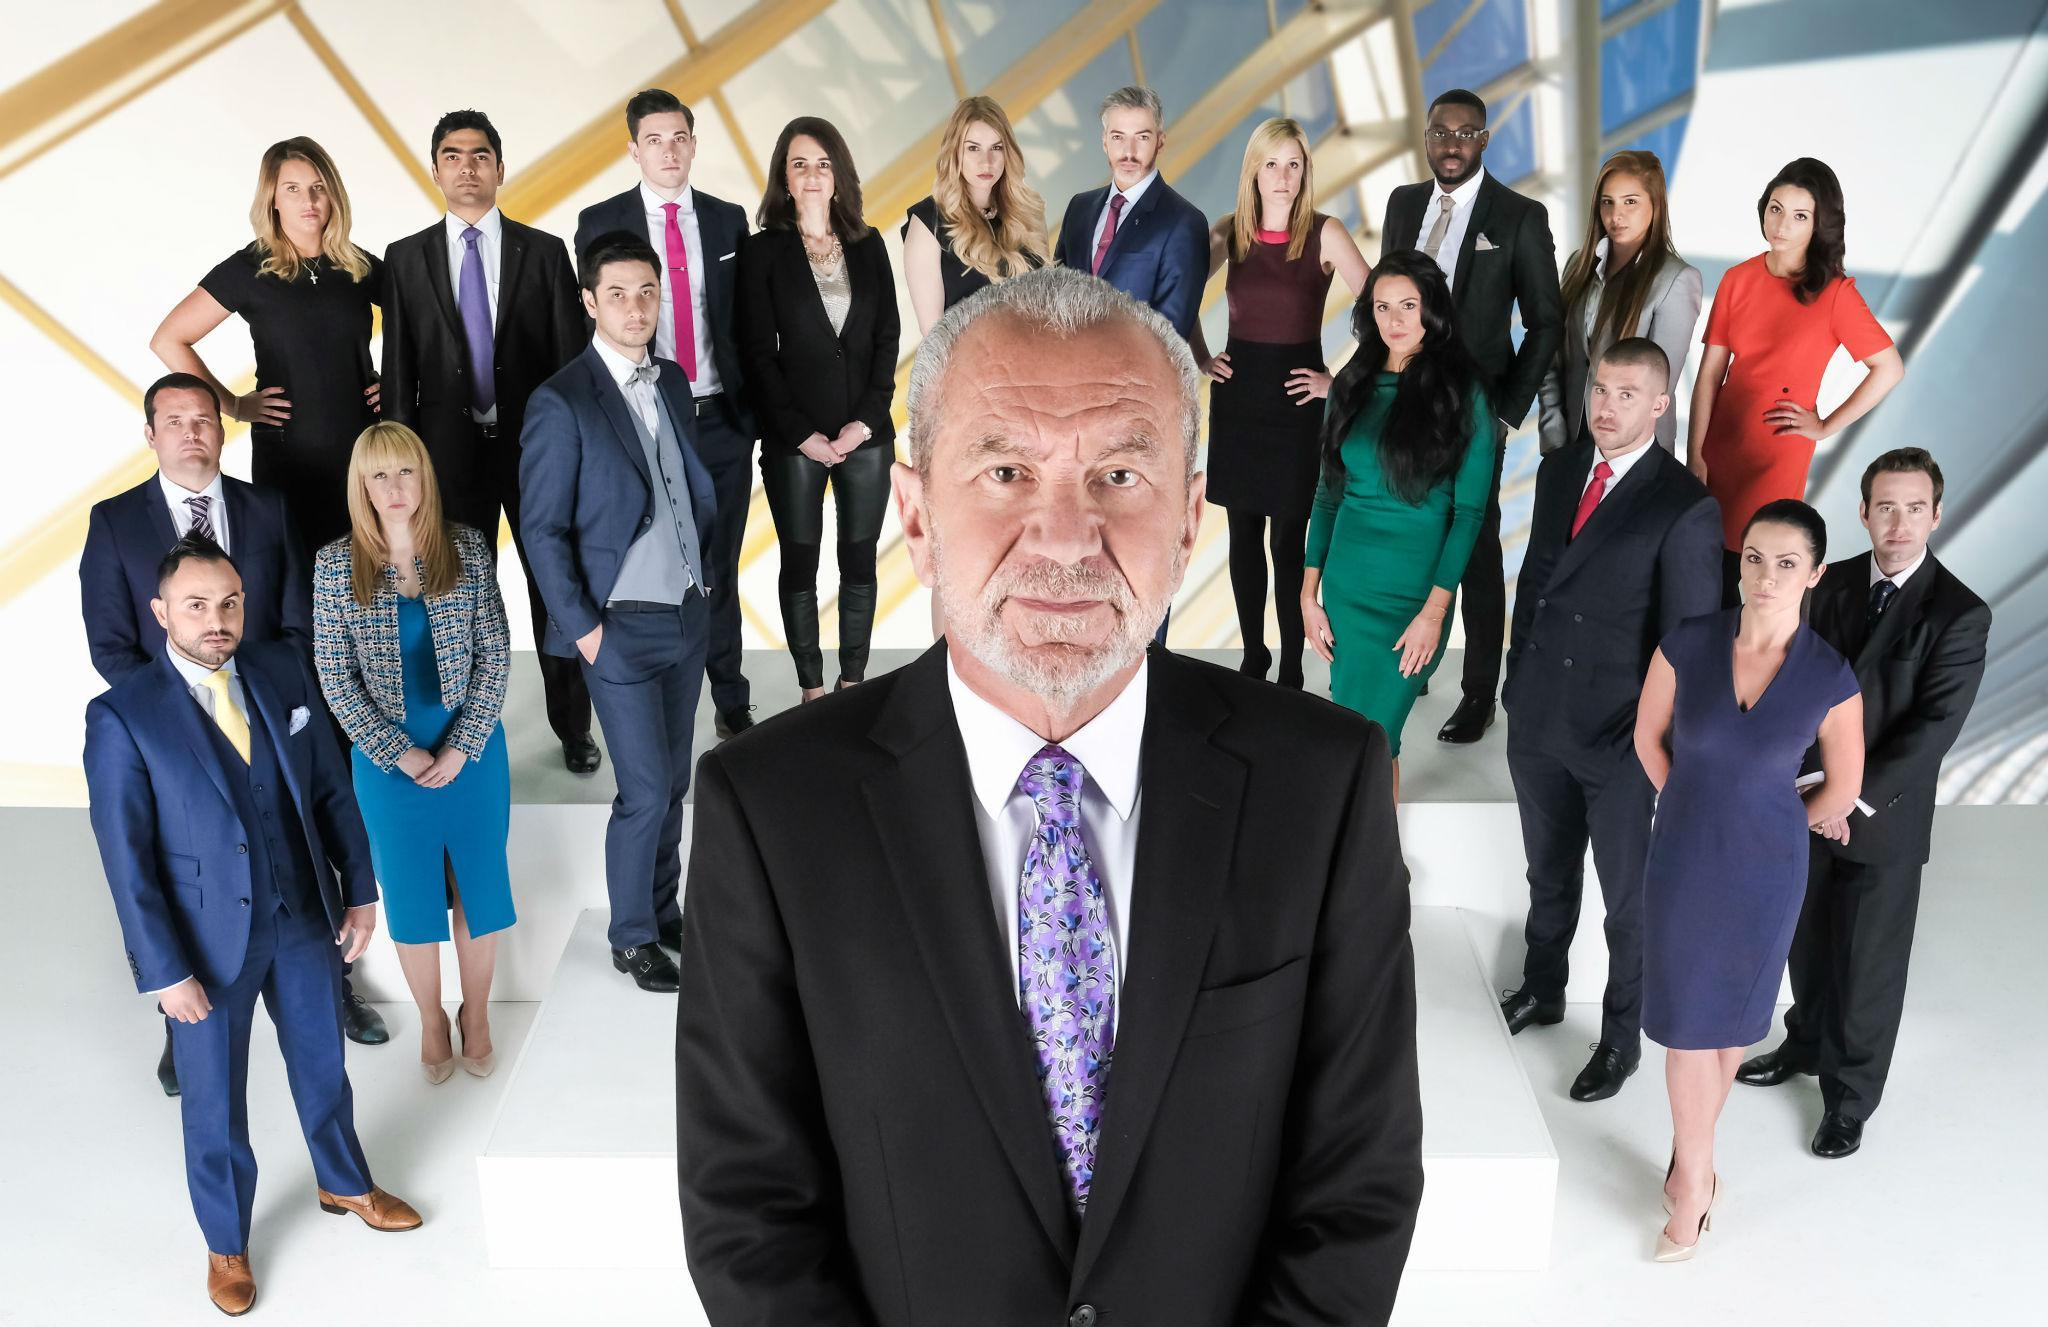 The apprentice contestants dating quotes